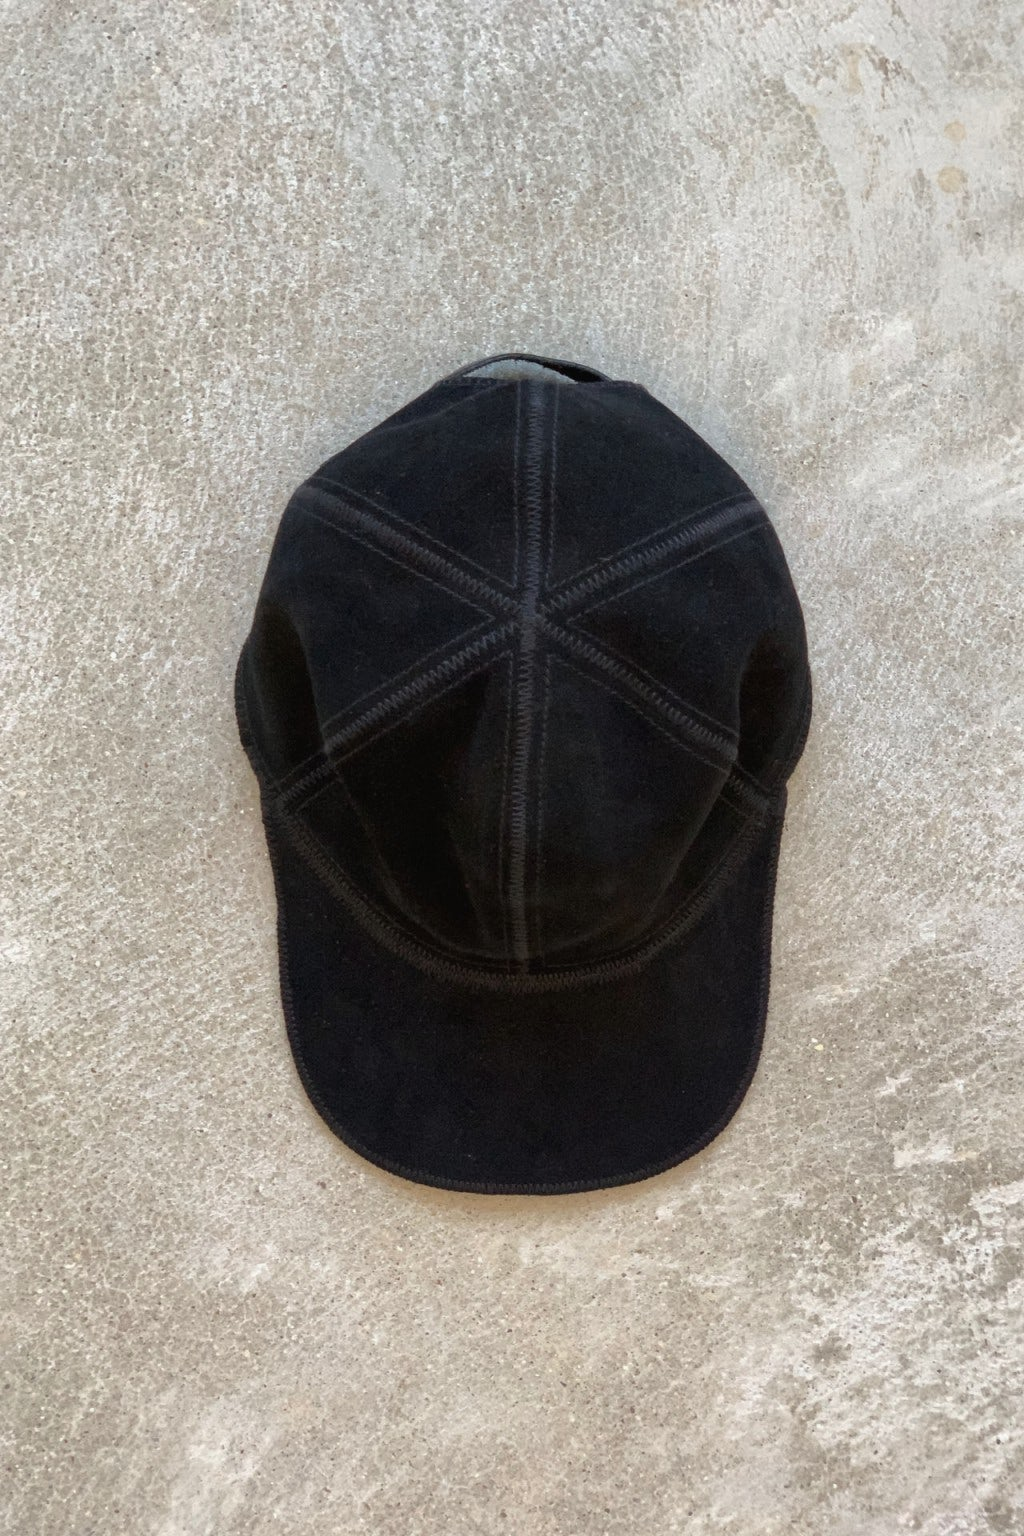 Lady White Co. Hat Black Suede